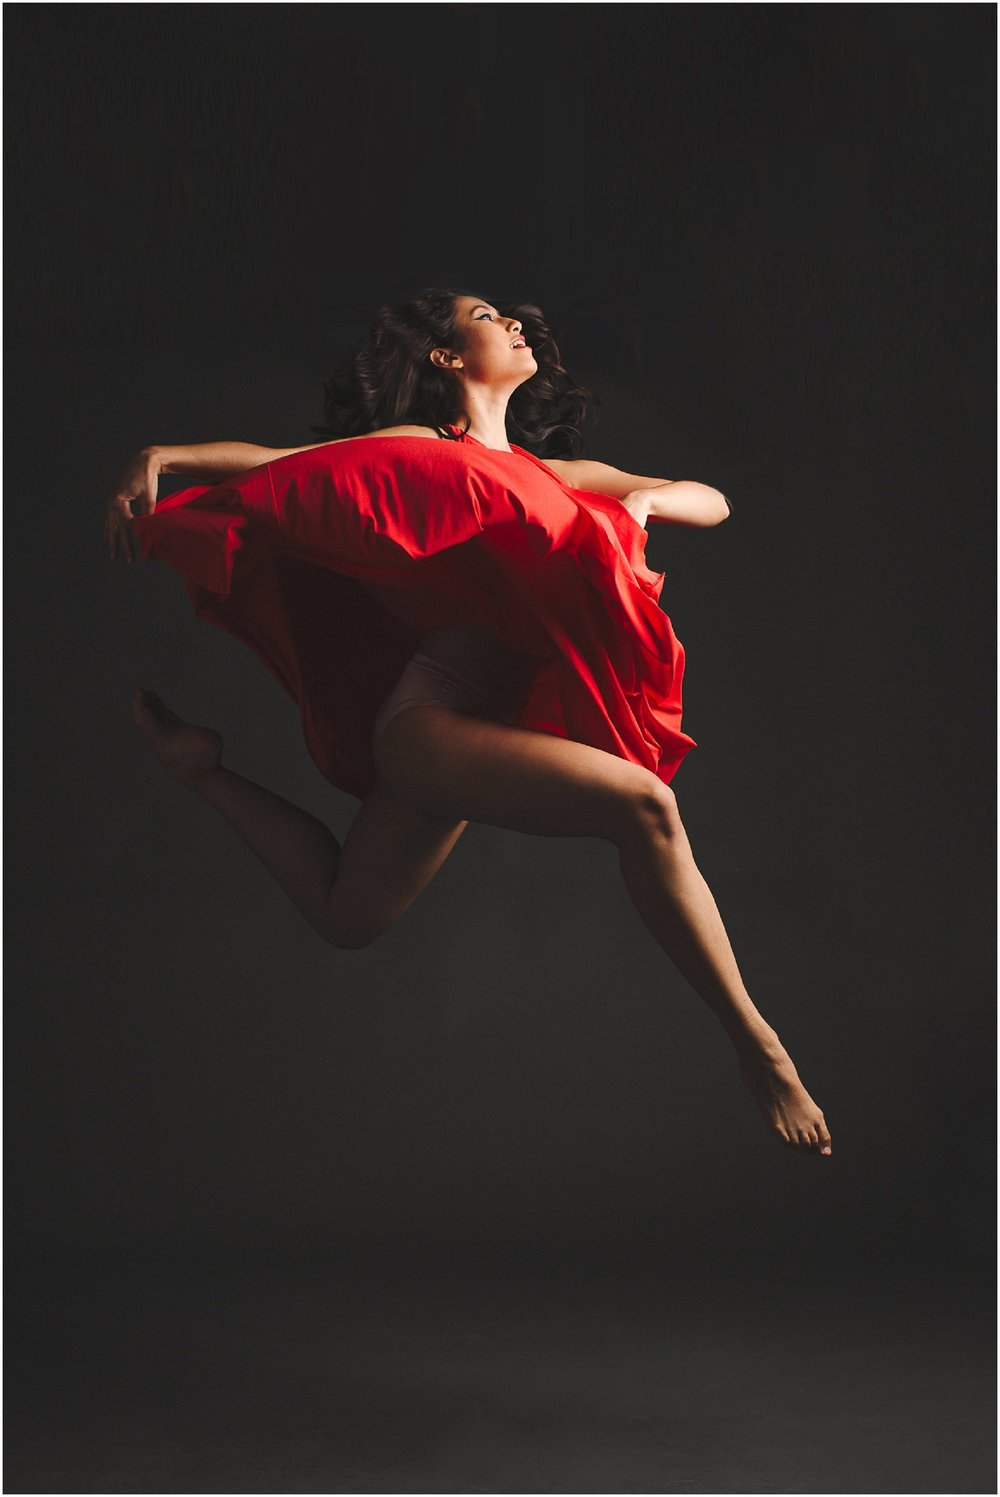 Imagery that captivates and builds your audience - Amanda creates unique, powerful and exciting visuals for dance companies that are designed to entice viewers, captivate their imagination and bring them to the theatre.A multi-talented artist who utilizes the medium of photography. Her images are informed of her passion for music & dance as they are from her innate creative vision and her clients' visual needs.Described by clients as 'unique,' 'evocative' and 'elegant' Amanda's images reach out and grab the attention of the viewer, taking them into a visual world where dance and imagery combine.